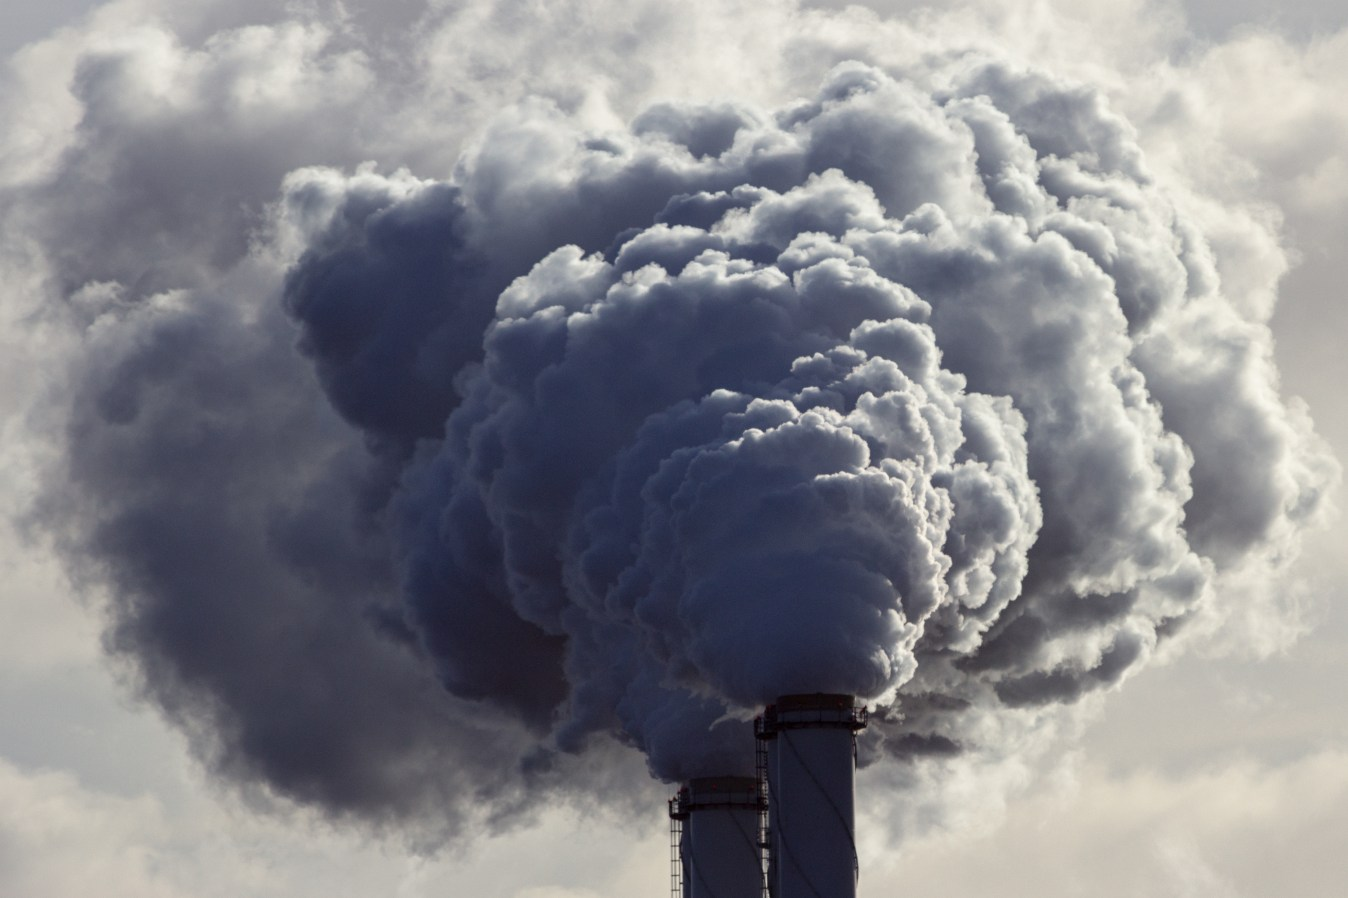 Air pollution from power plant chimneys. Toxic air concept. Mother Earth illustration. Image credit: jvdwolf / 123rf Climate crisis